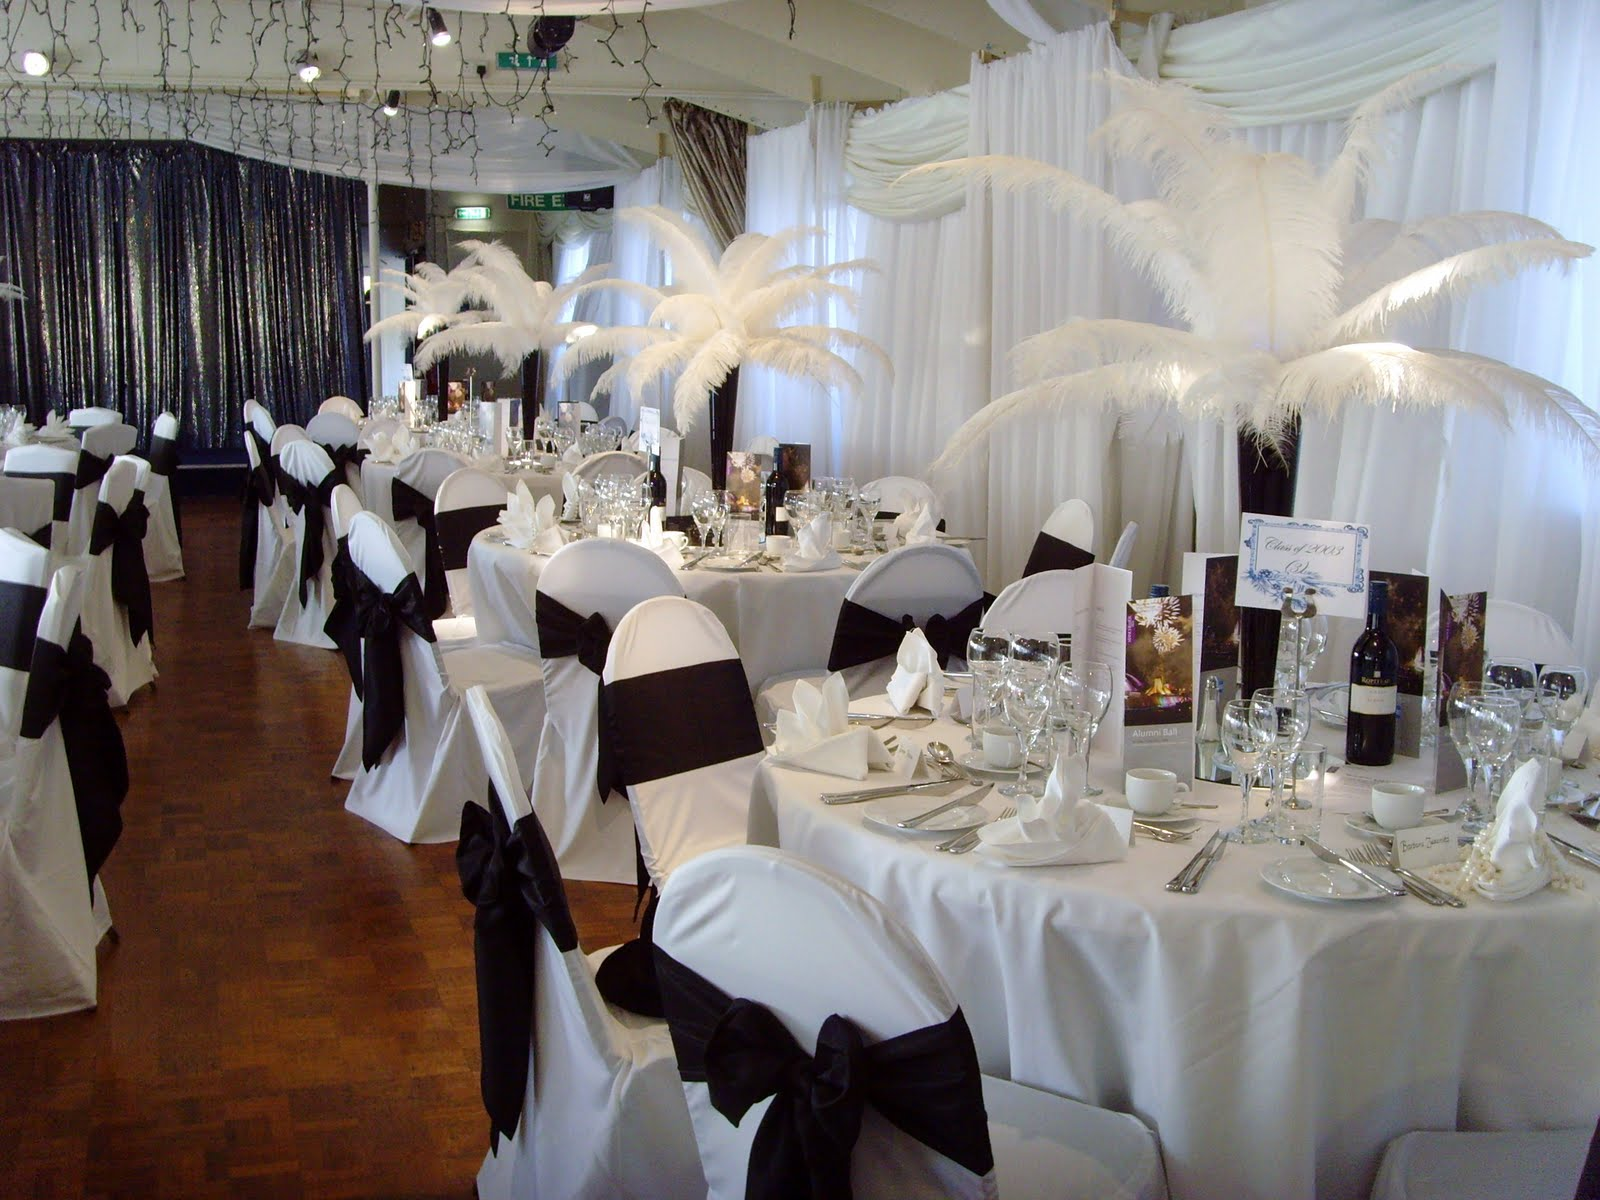 The best wedding decorations wedding venues decorations guide for Wedding reception location ideas